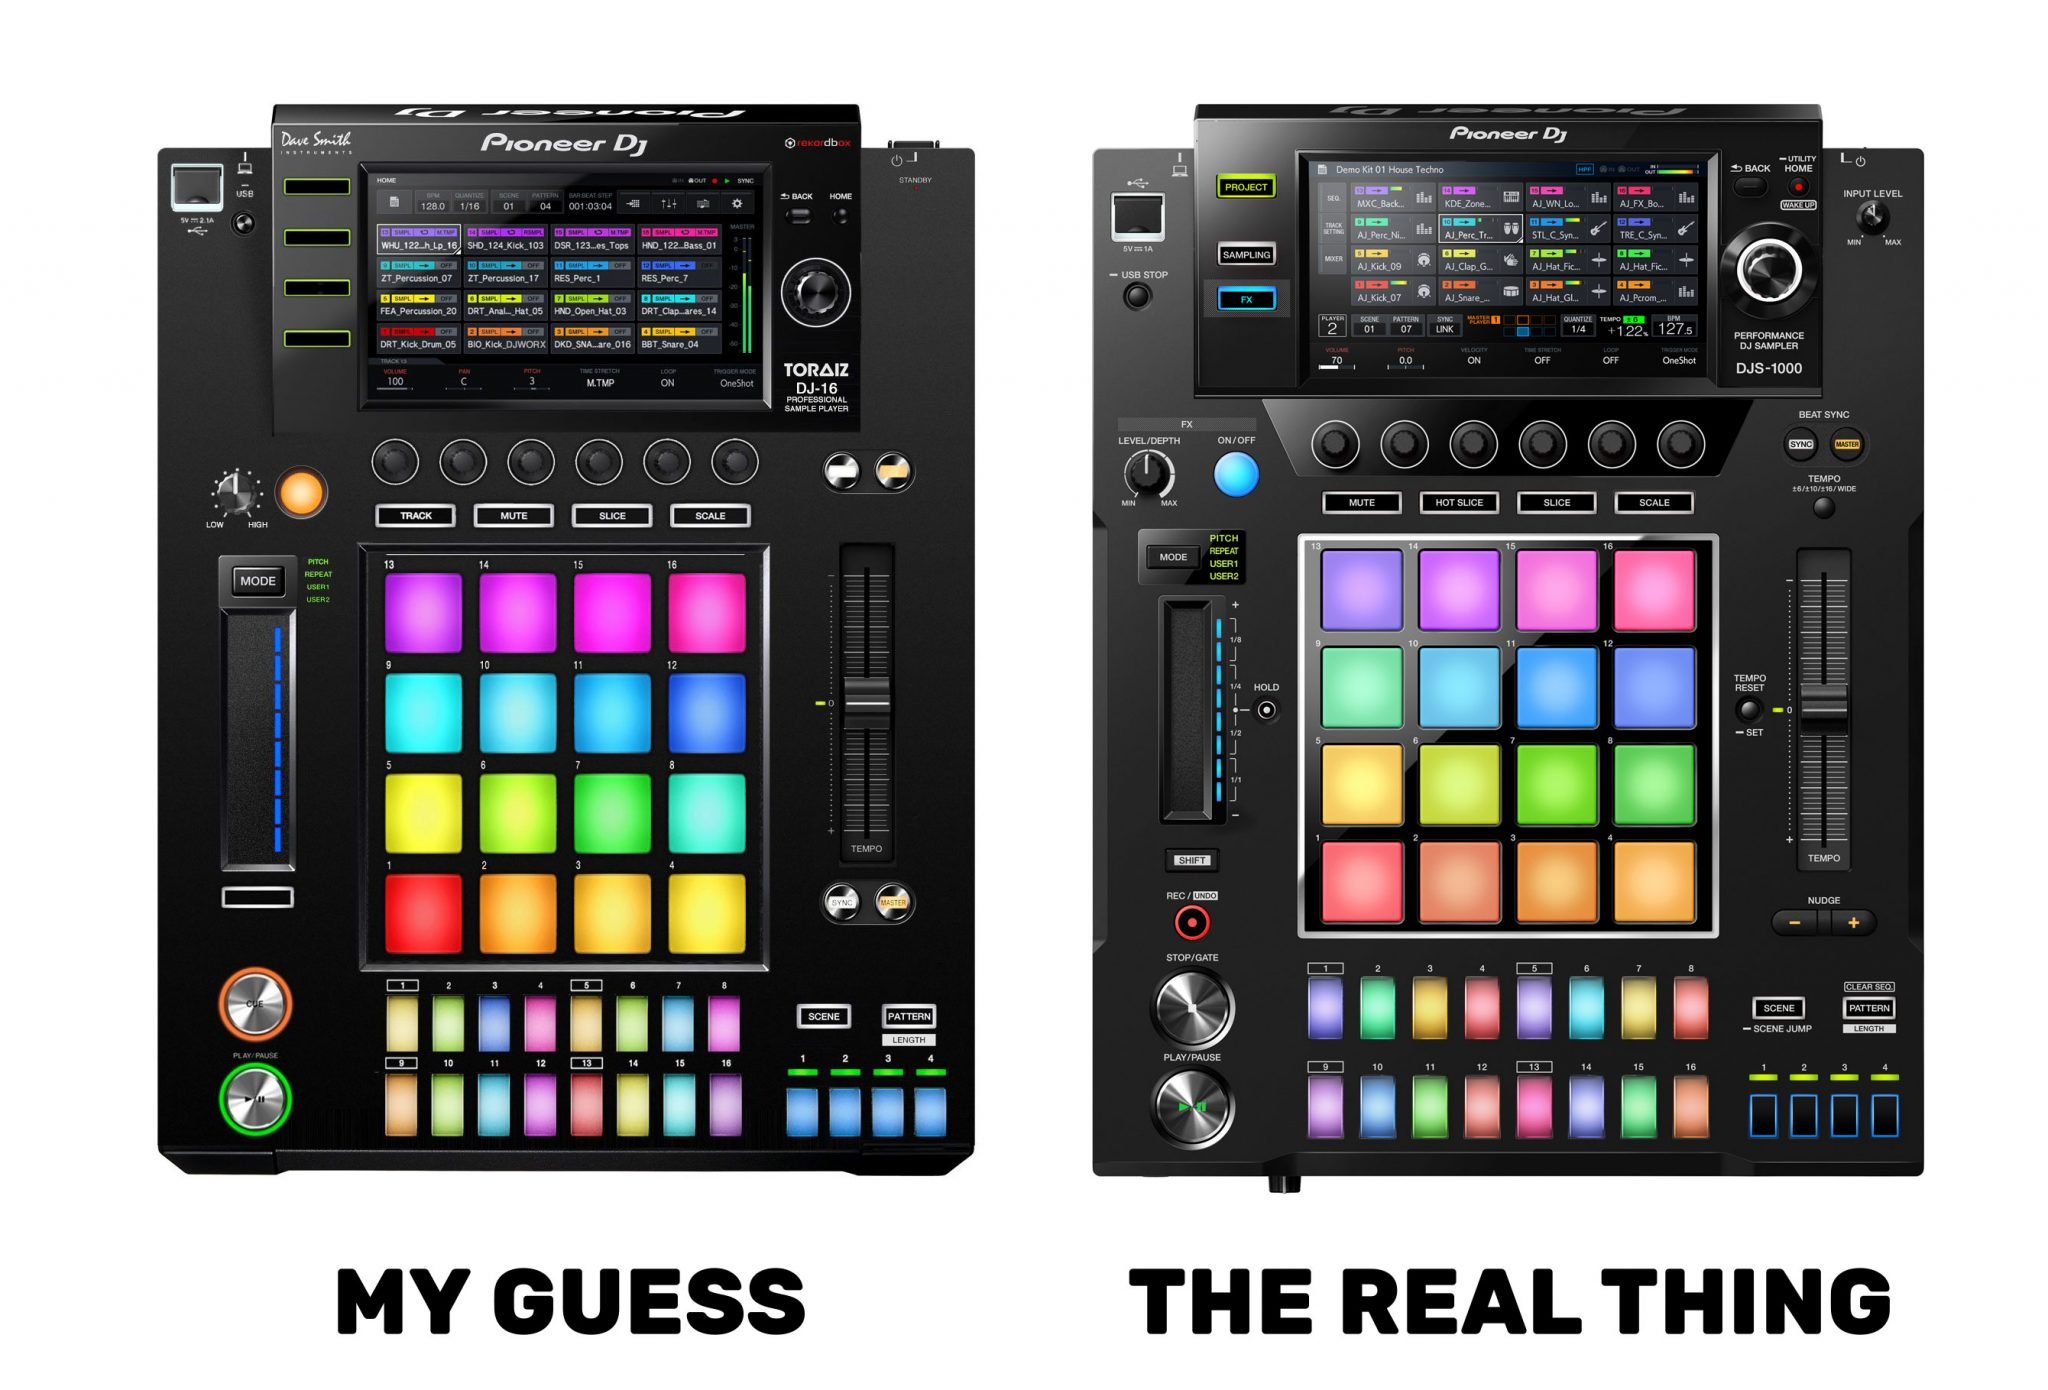 It's real —the DJS-1000 is a sampler and sequencer in a CDJ box 1